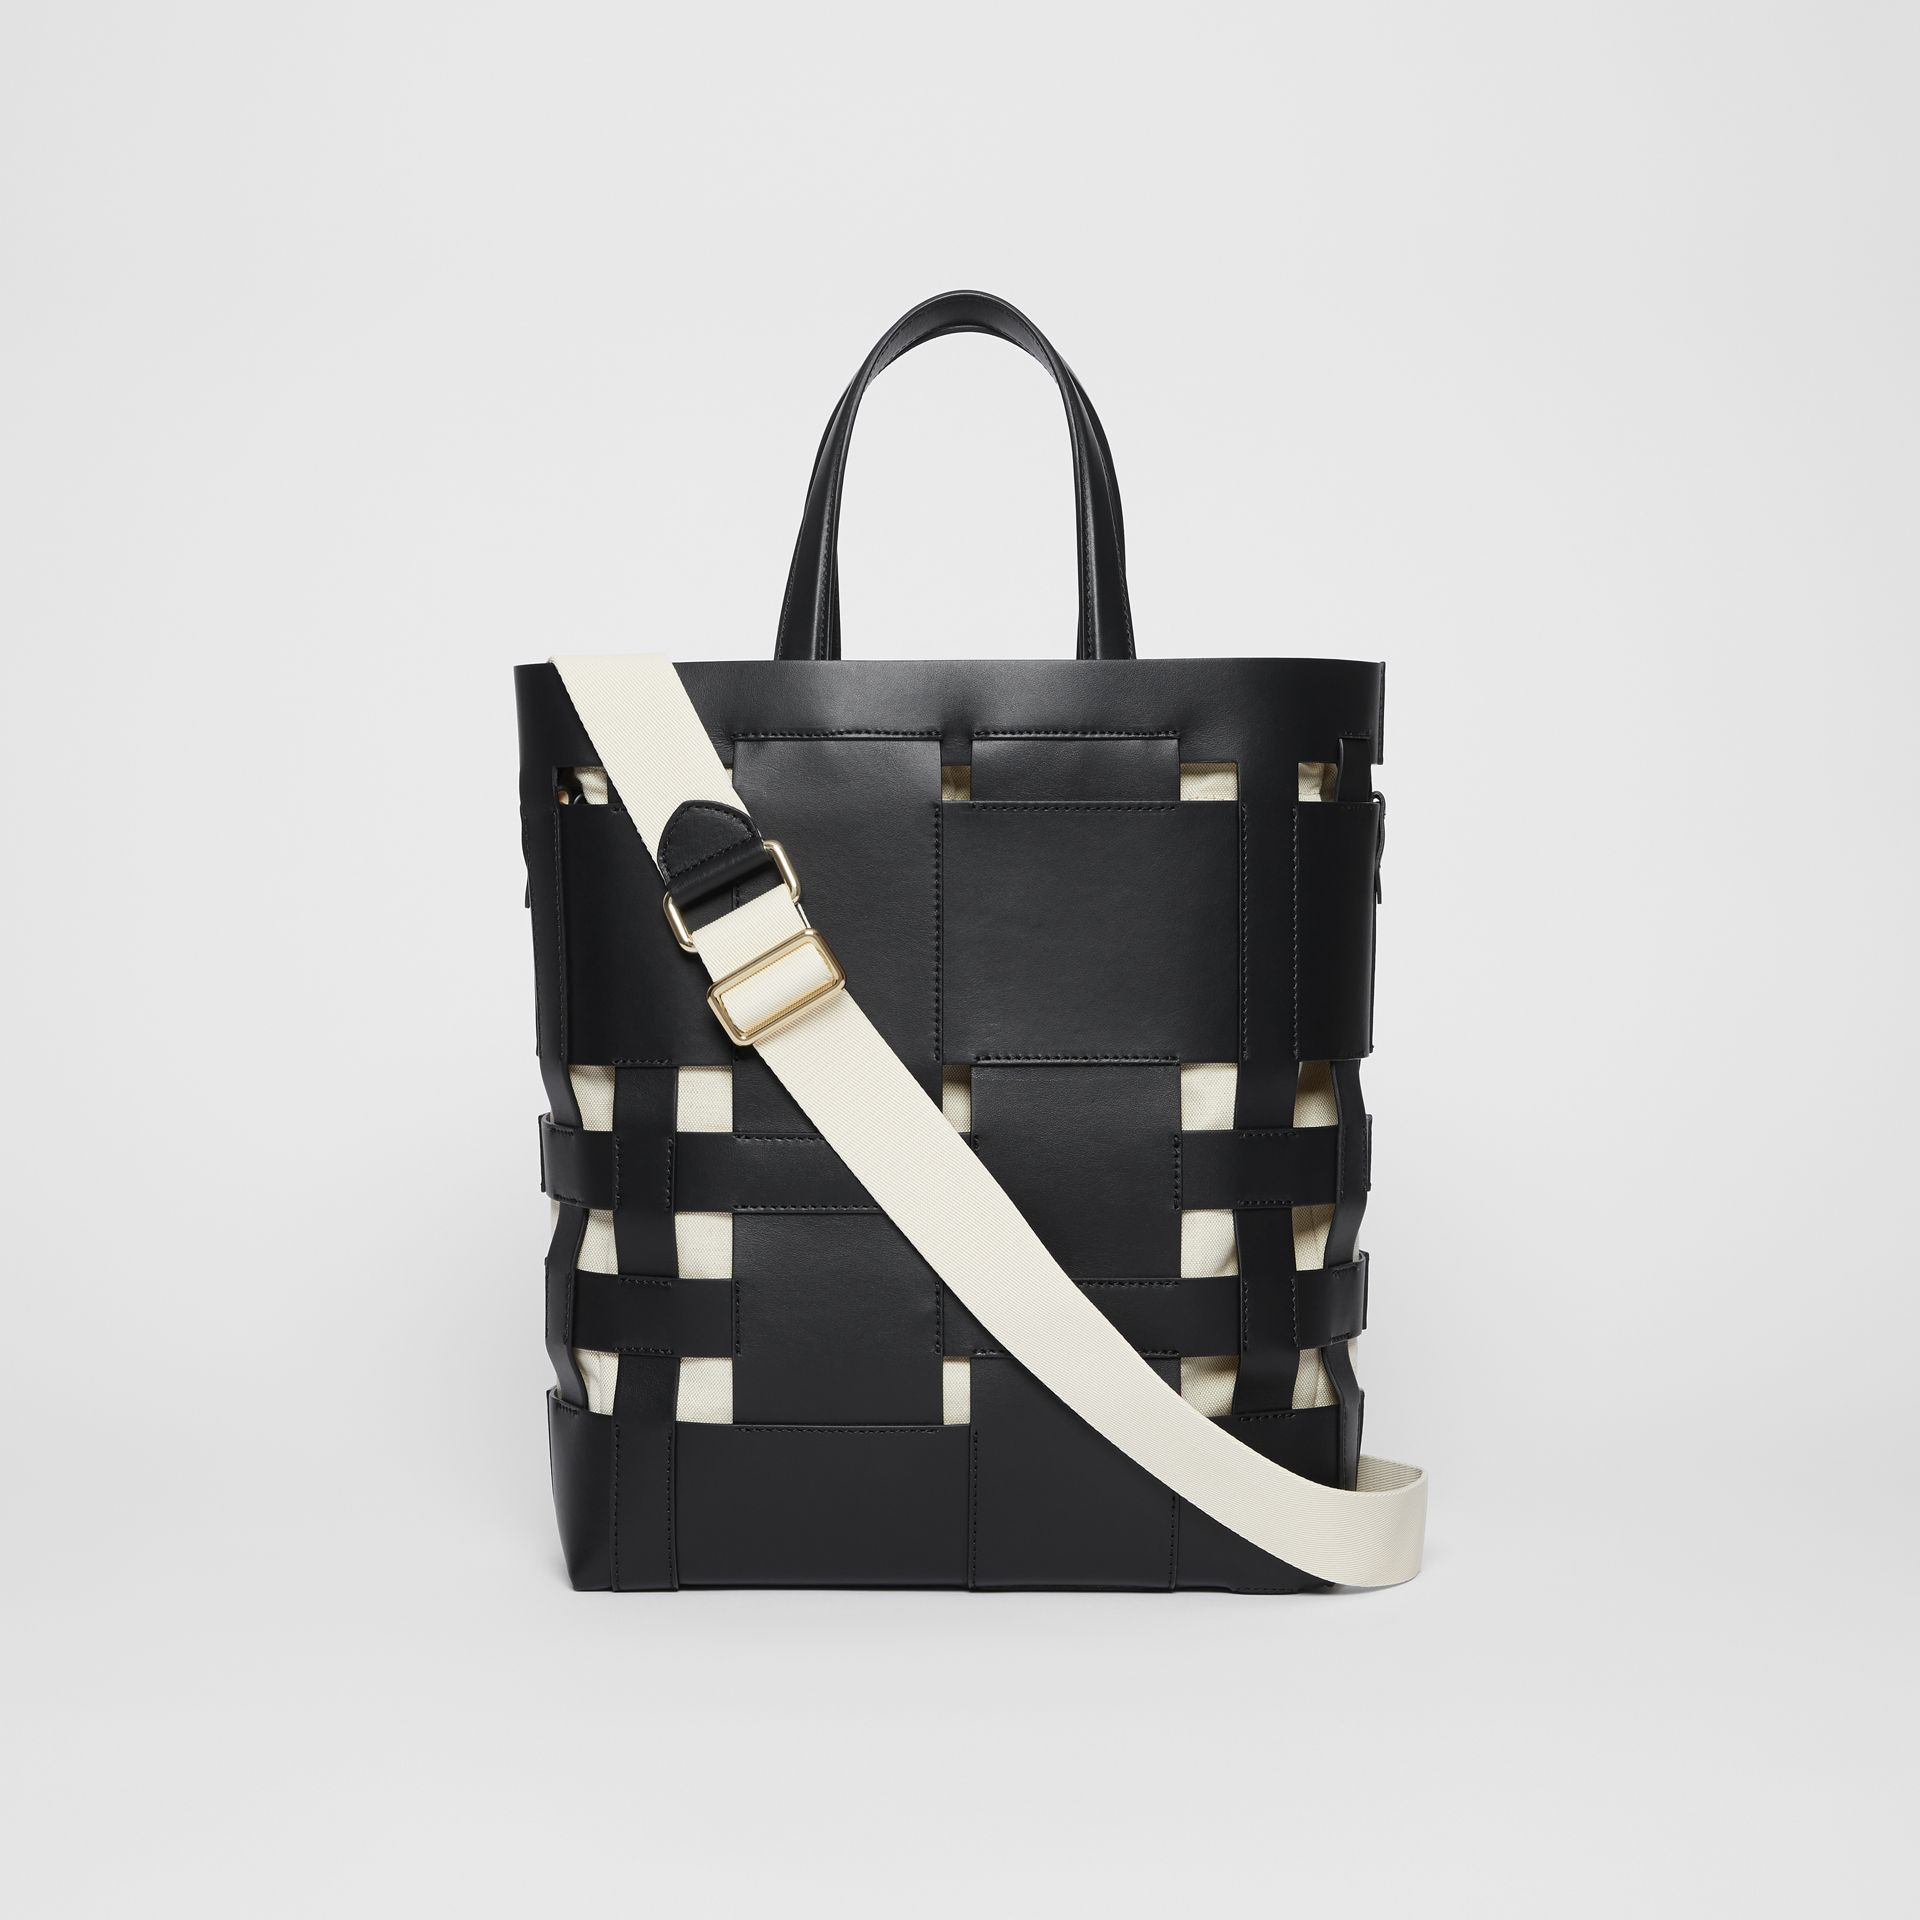 Medium Leather Foster Tote in Black - Women | Burberry - gallery image 7